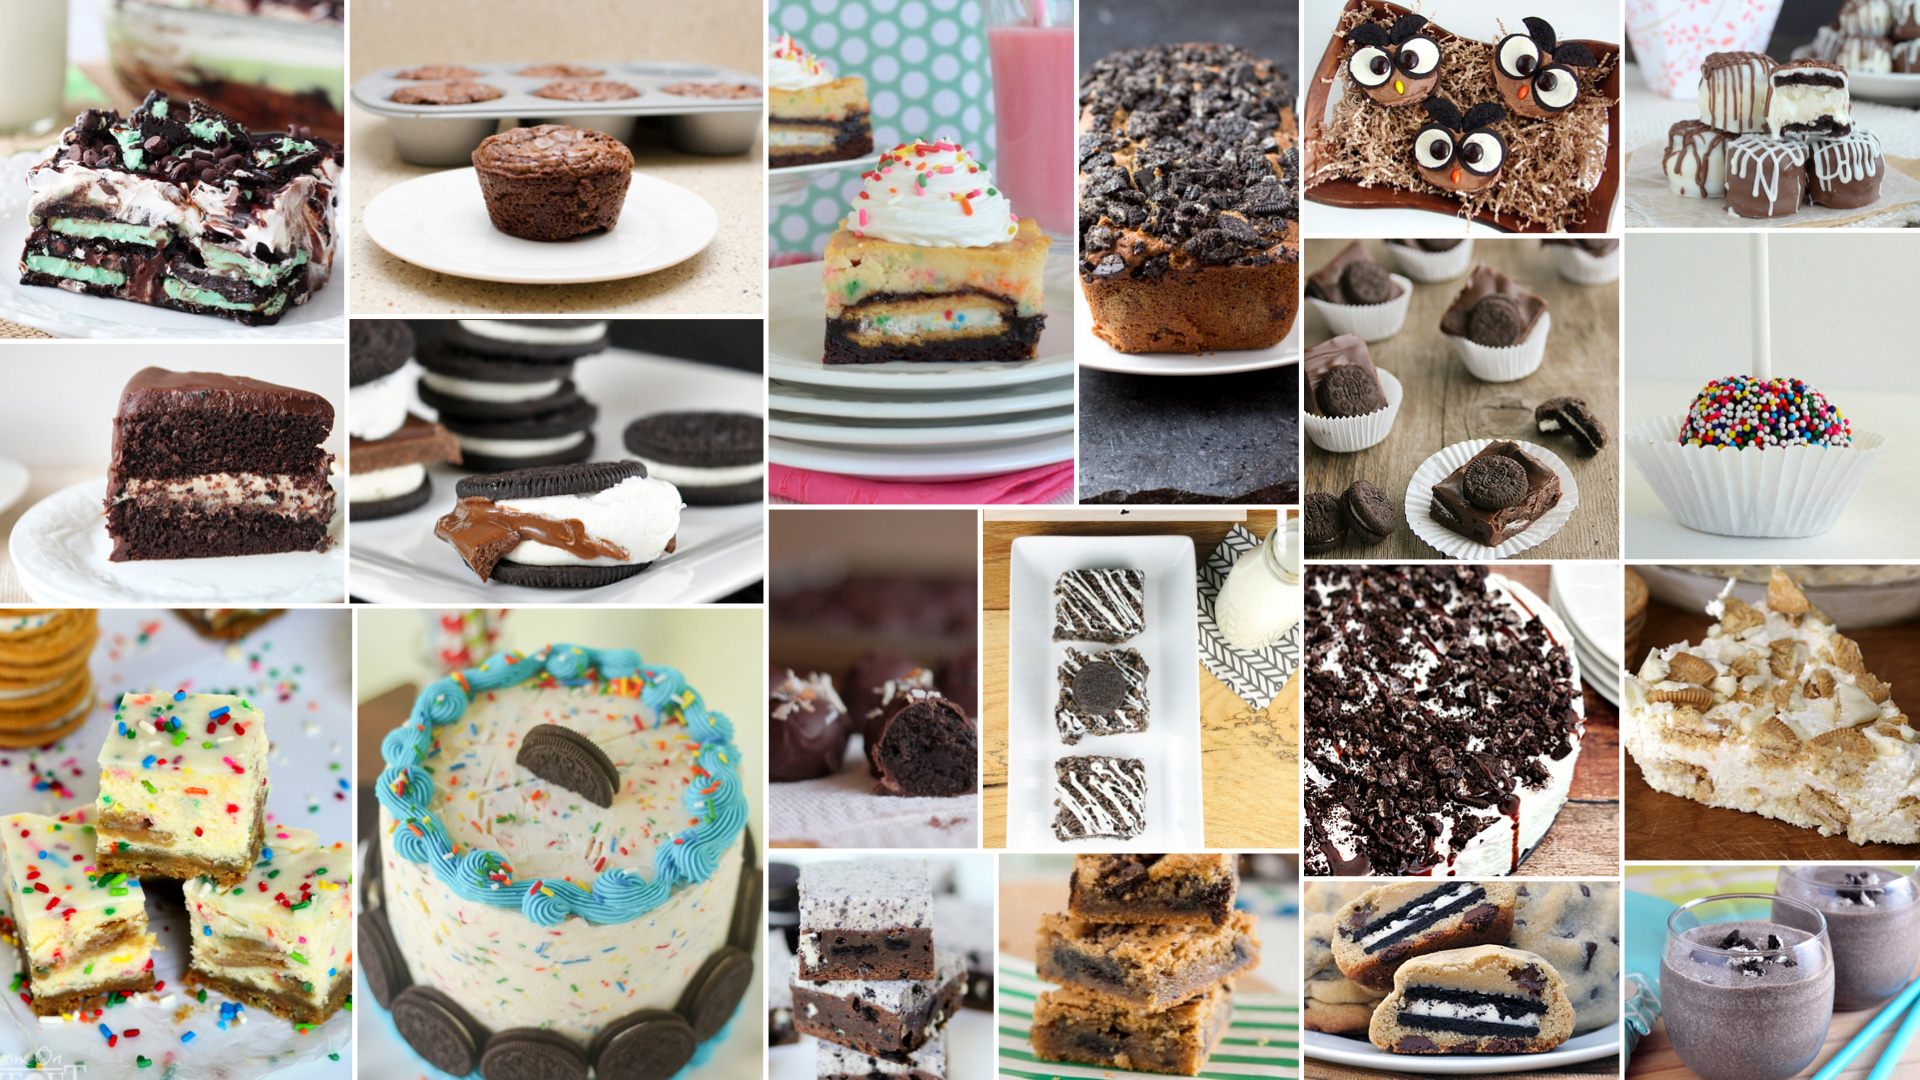 20 best recipes using Oreos | SheKnows.com